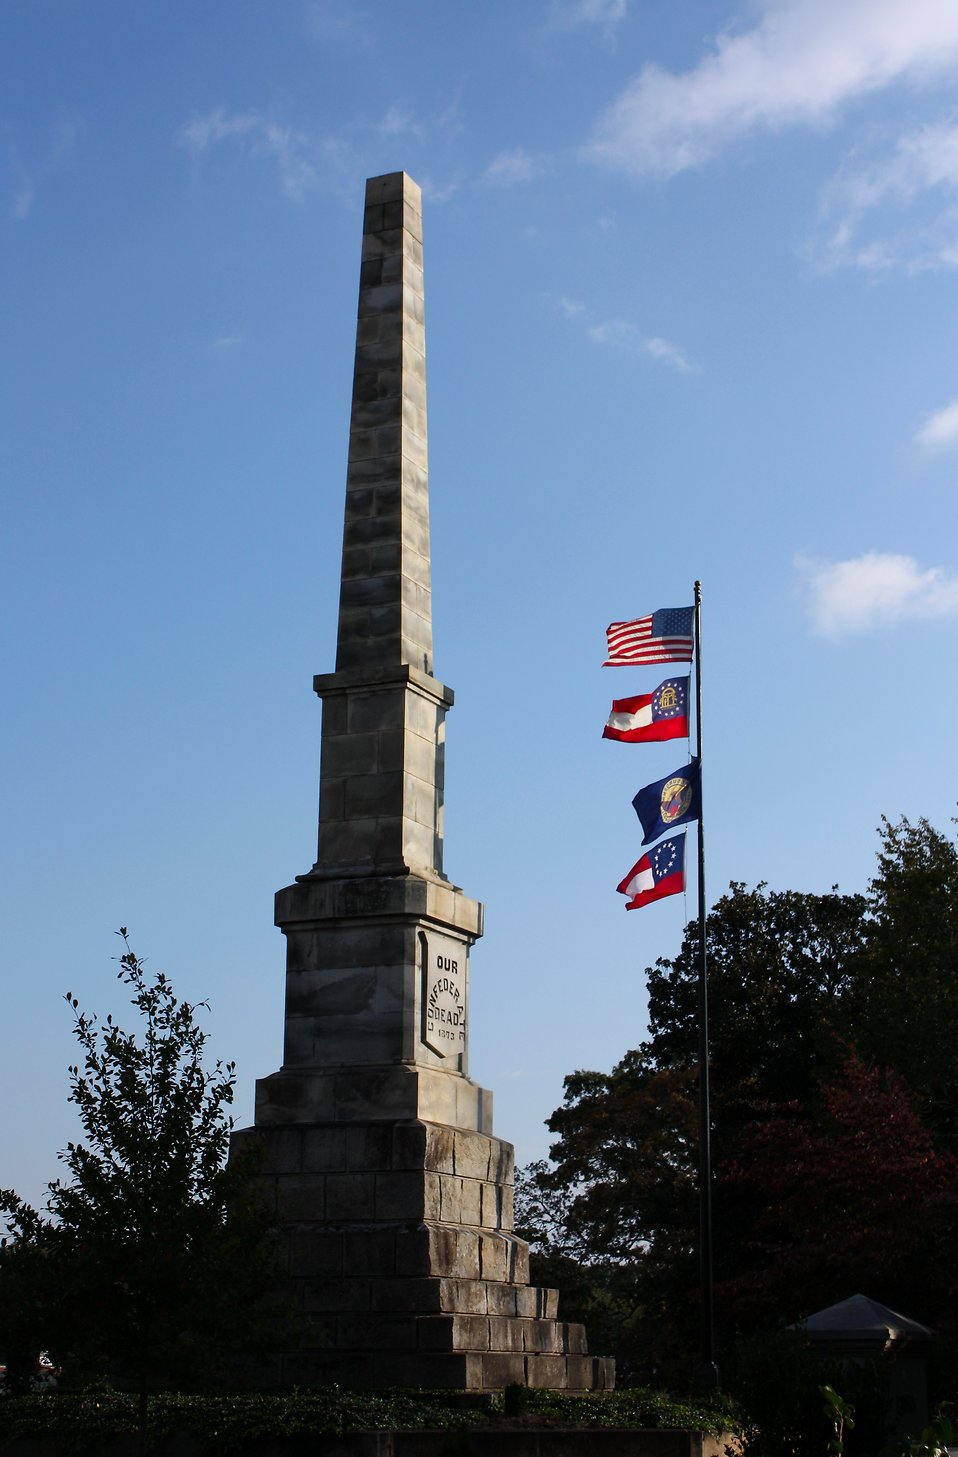 The Confederate Obelisk at historic Oakland Cemetery in Atlanta, Georgia : Free Stock Photo